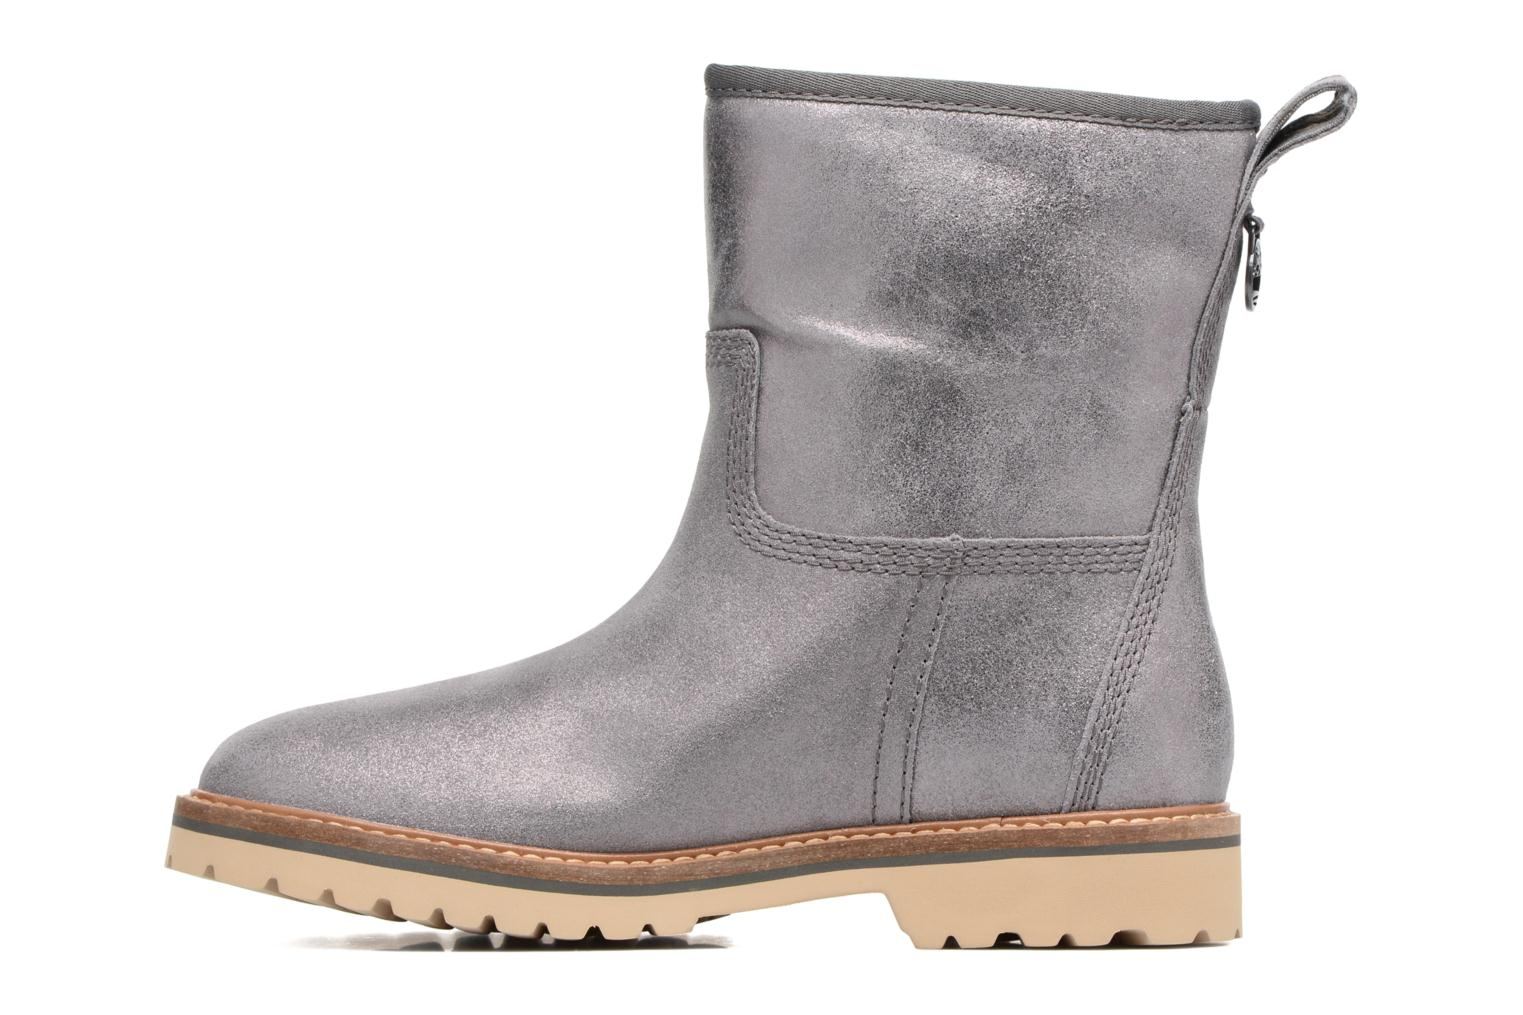 Chamonix Valley Winter Boot Dark Grey Shiny Suede